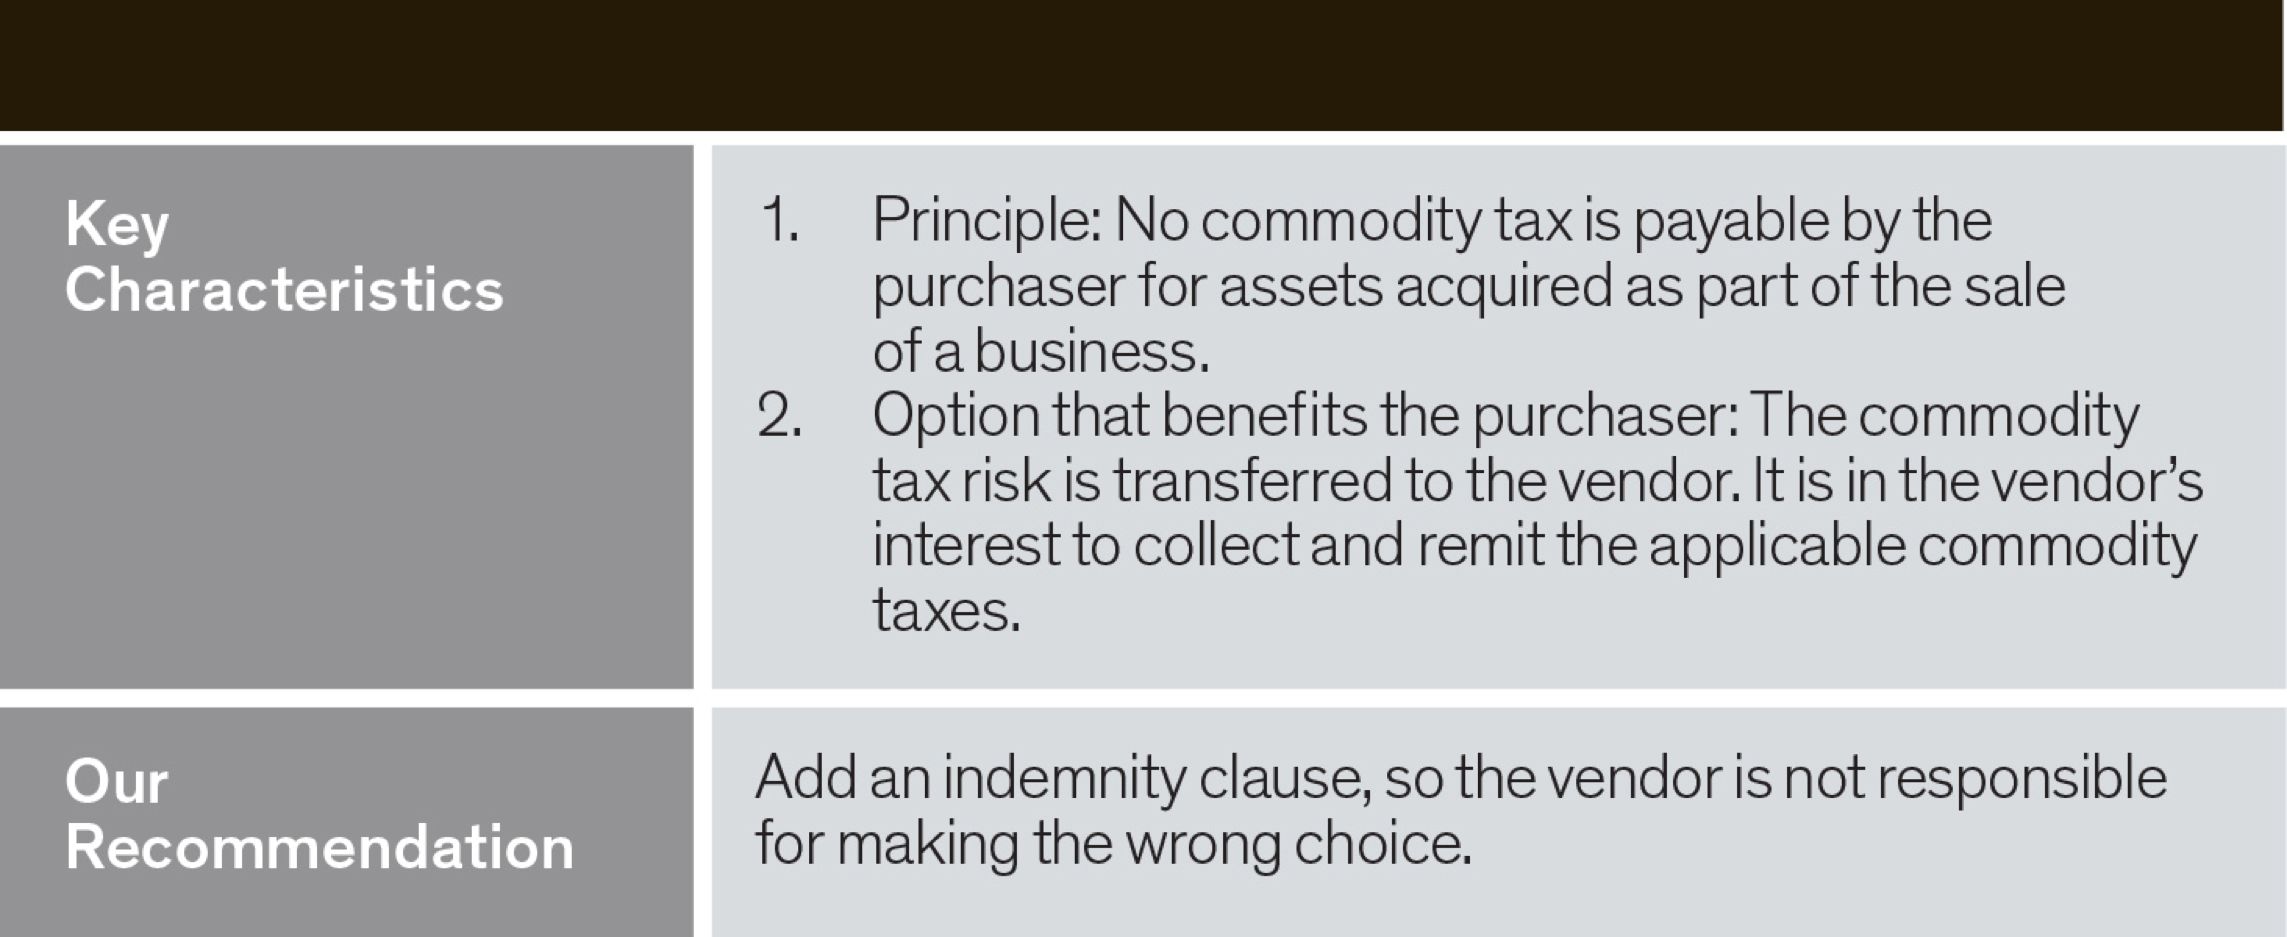 key characteristics and our recommendation - add an indemnity clause, so the vendor is not responsible for making the wrong choice.